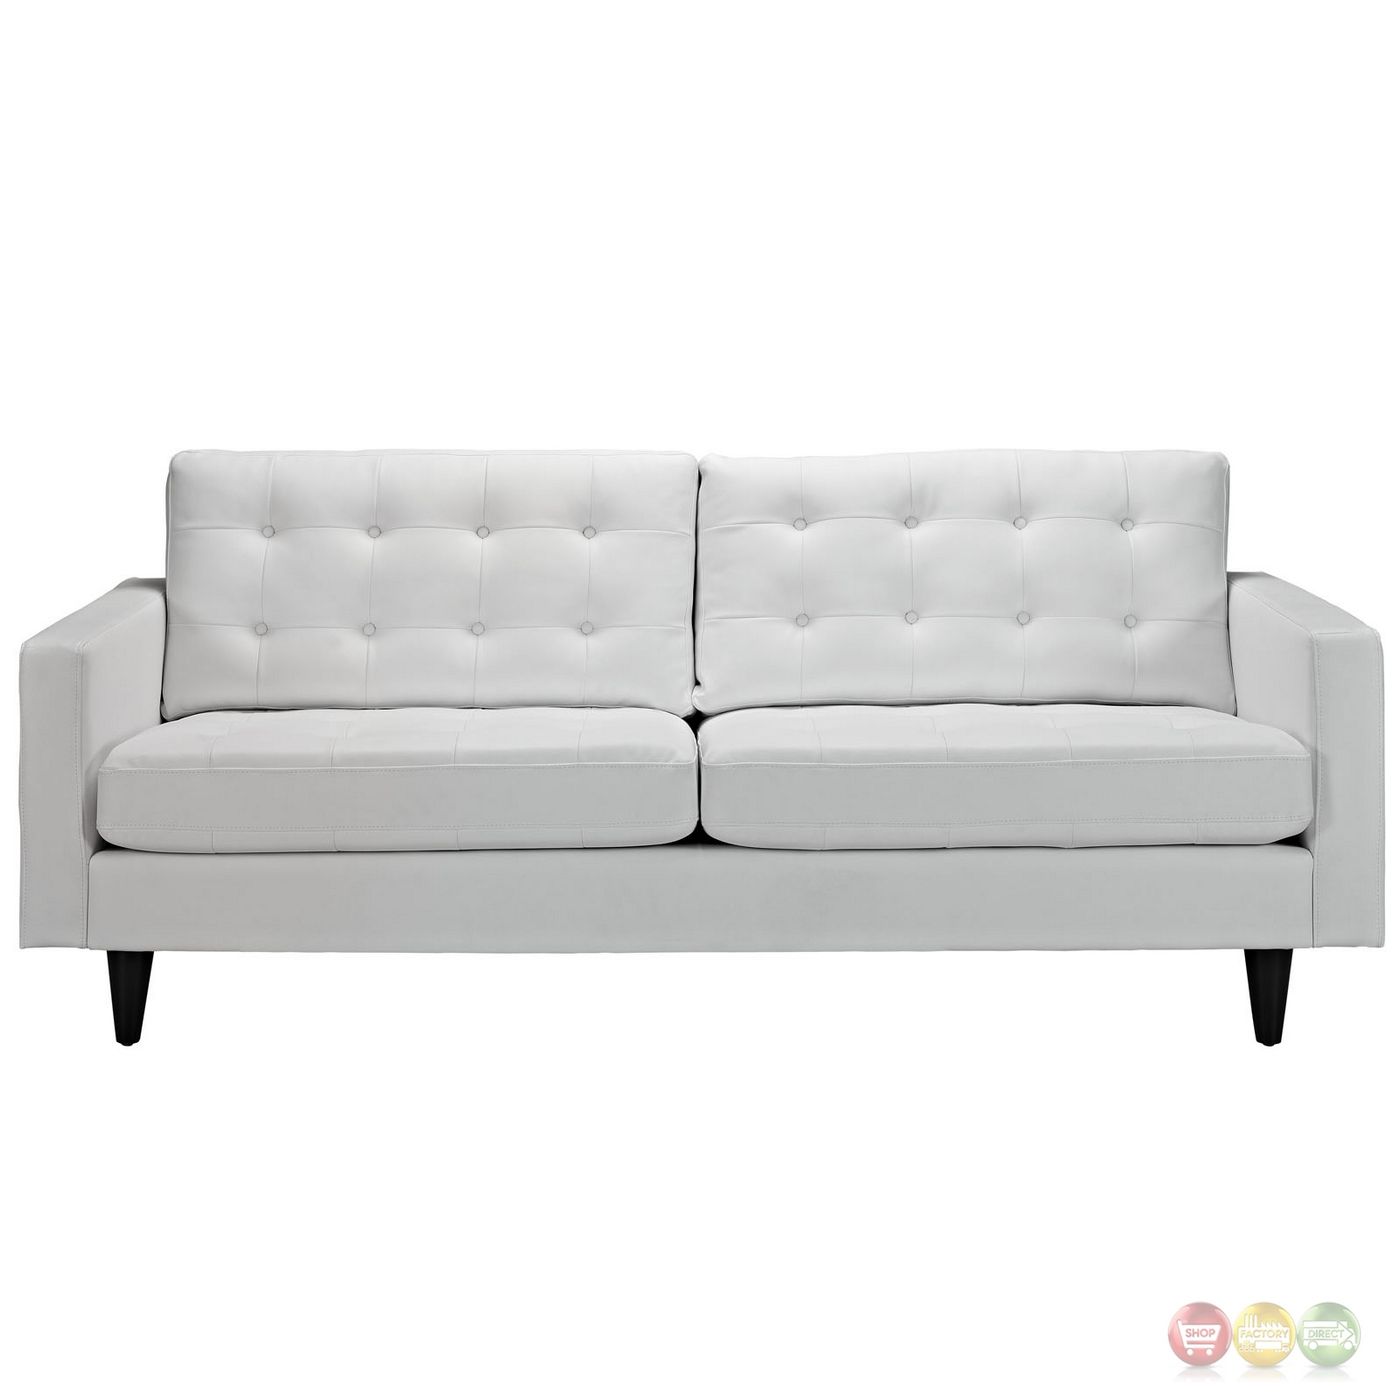 white tufted leather sofa sofas on credit with no checks empress contemporary button